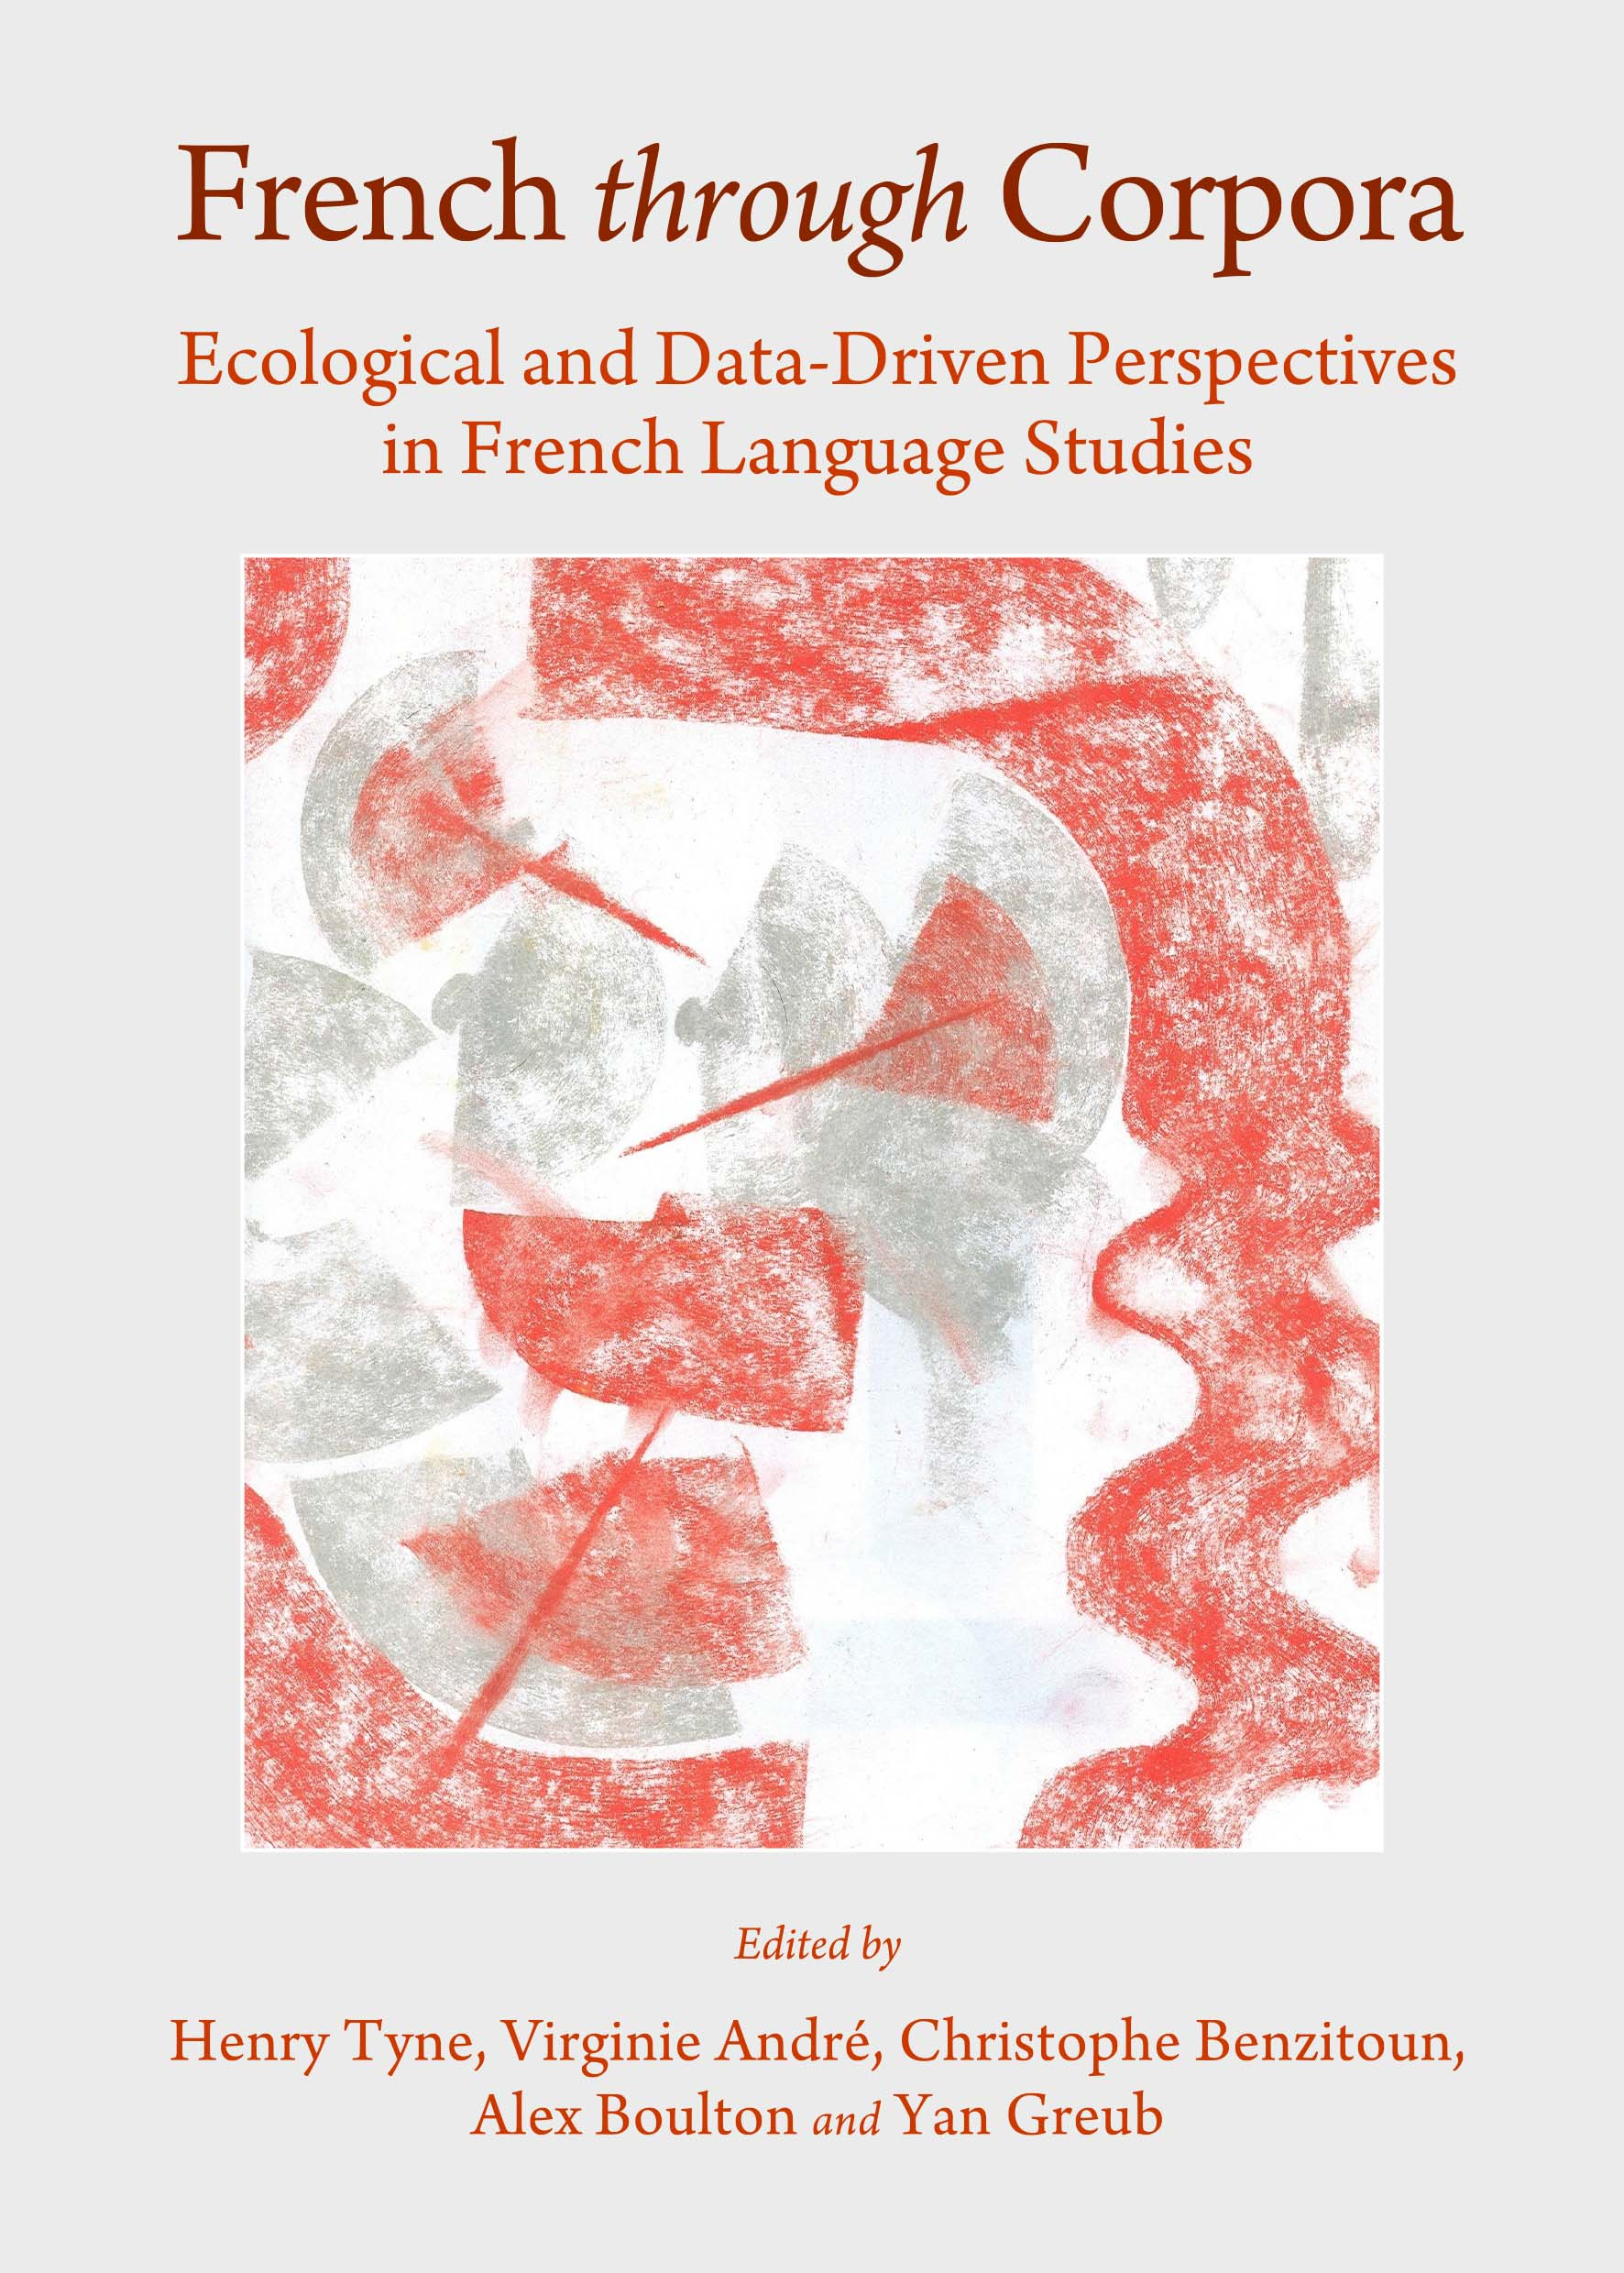 French through Corpora: Ecological and Data-Driven Perspectives in French Language Studies